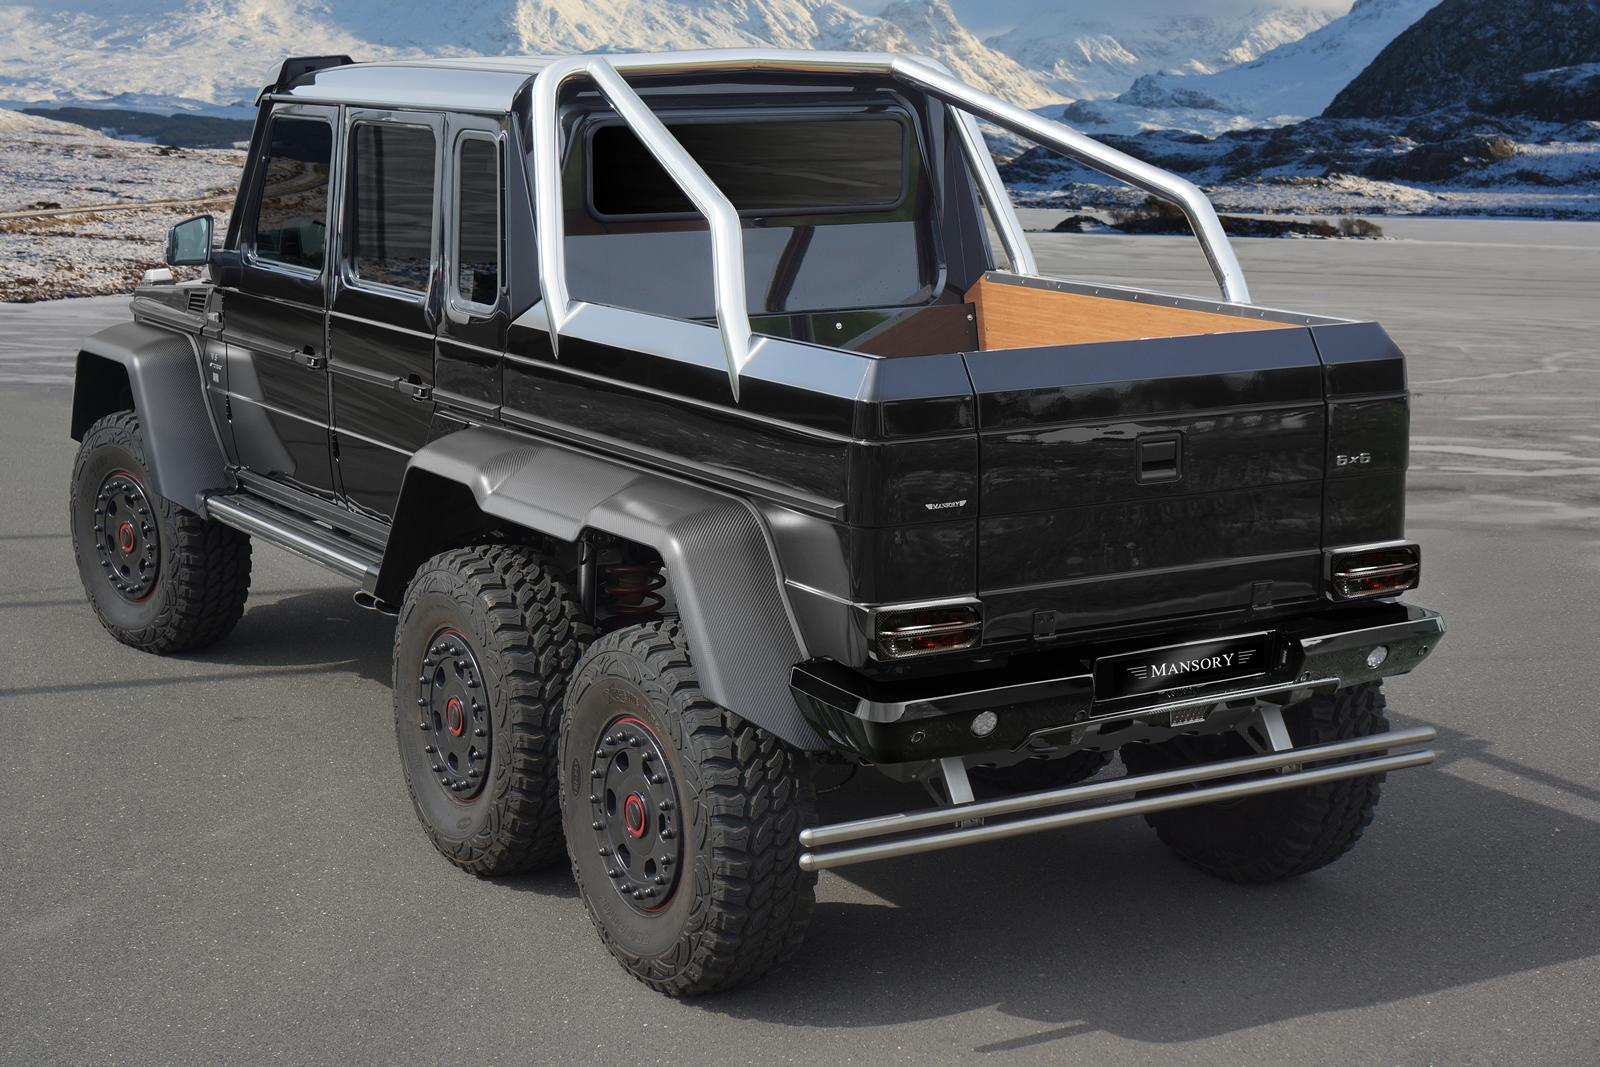 Mansory mercedes benz g63 amg 6x6 for Mercedes benz amg 6x6 price